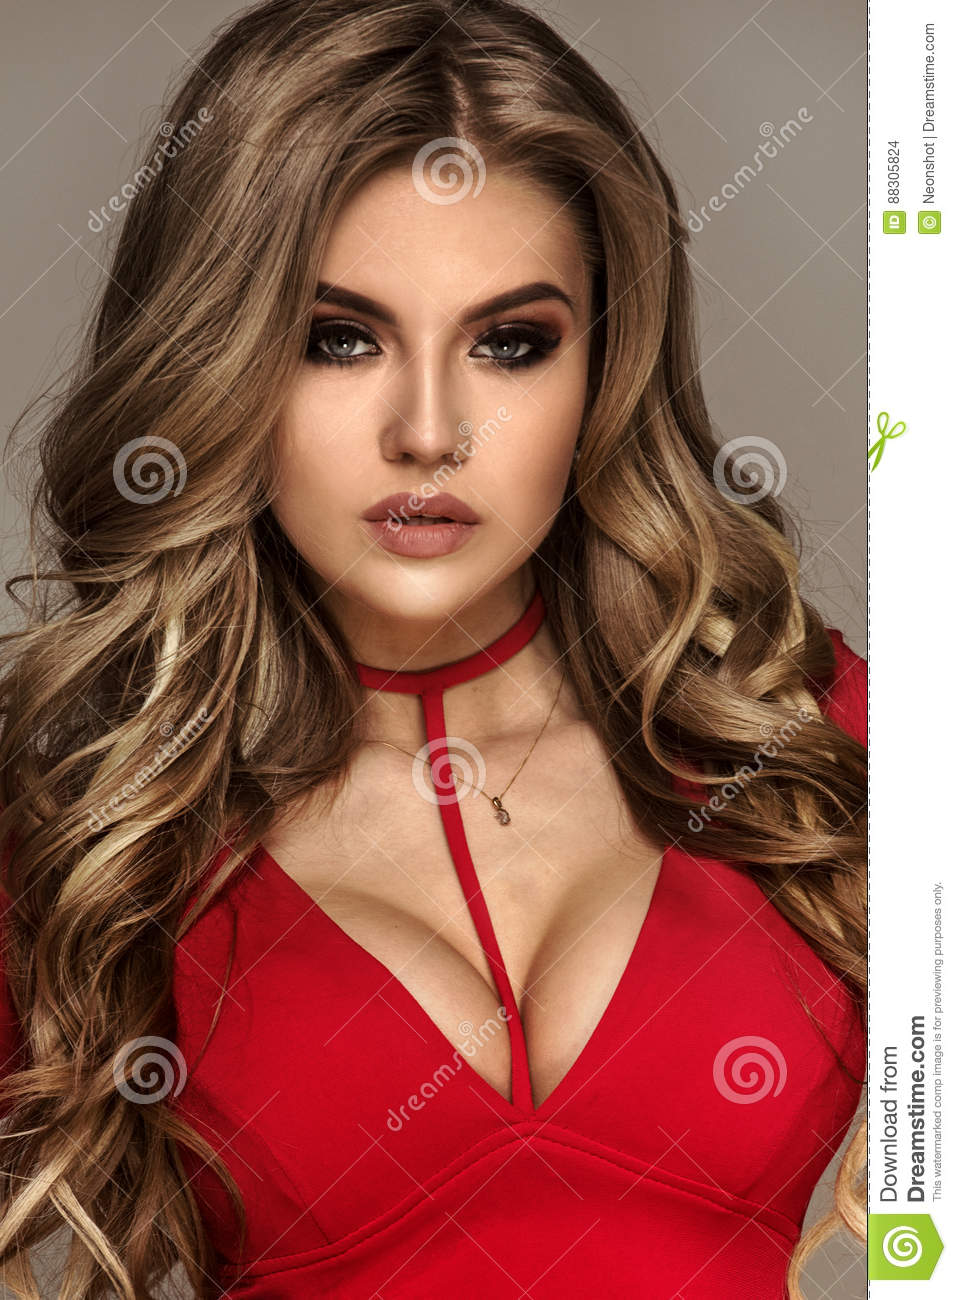 Fashion photo of beautiful blonde caucasian woman with wavy long hair and glamour makeup,girl wearing red dress.